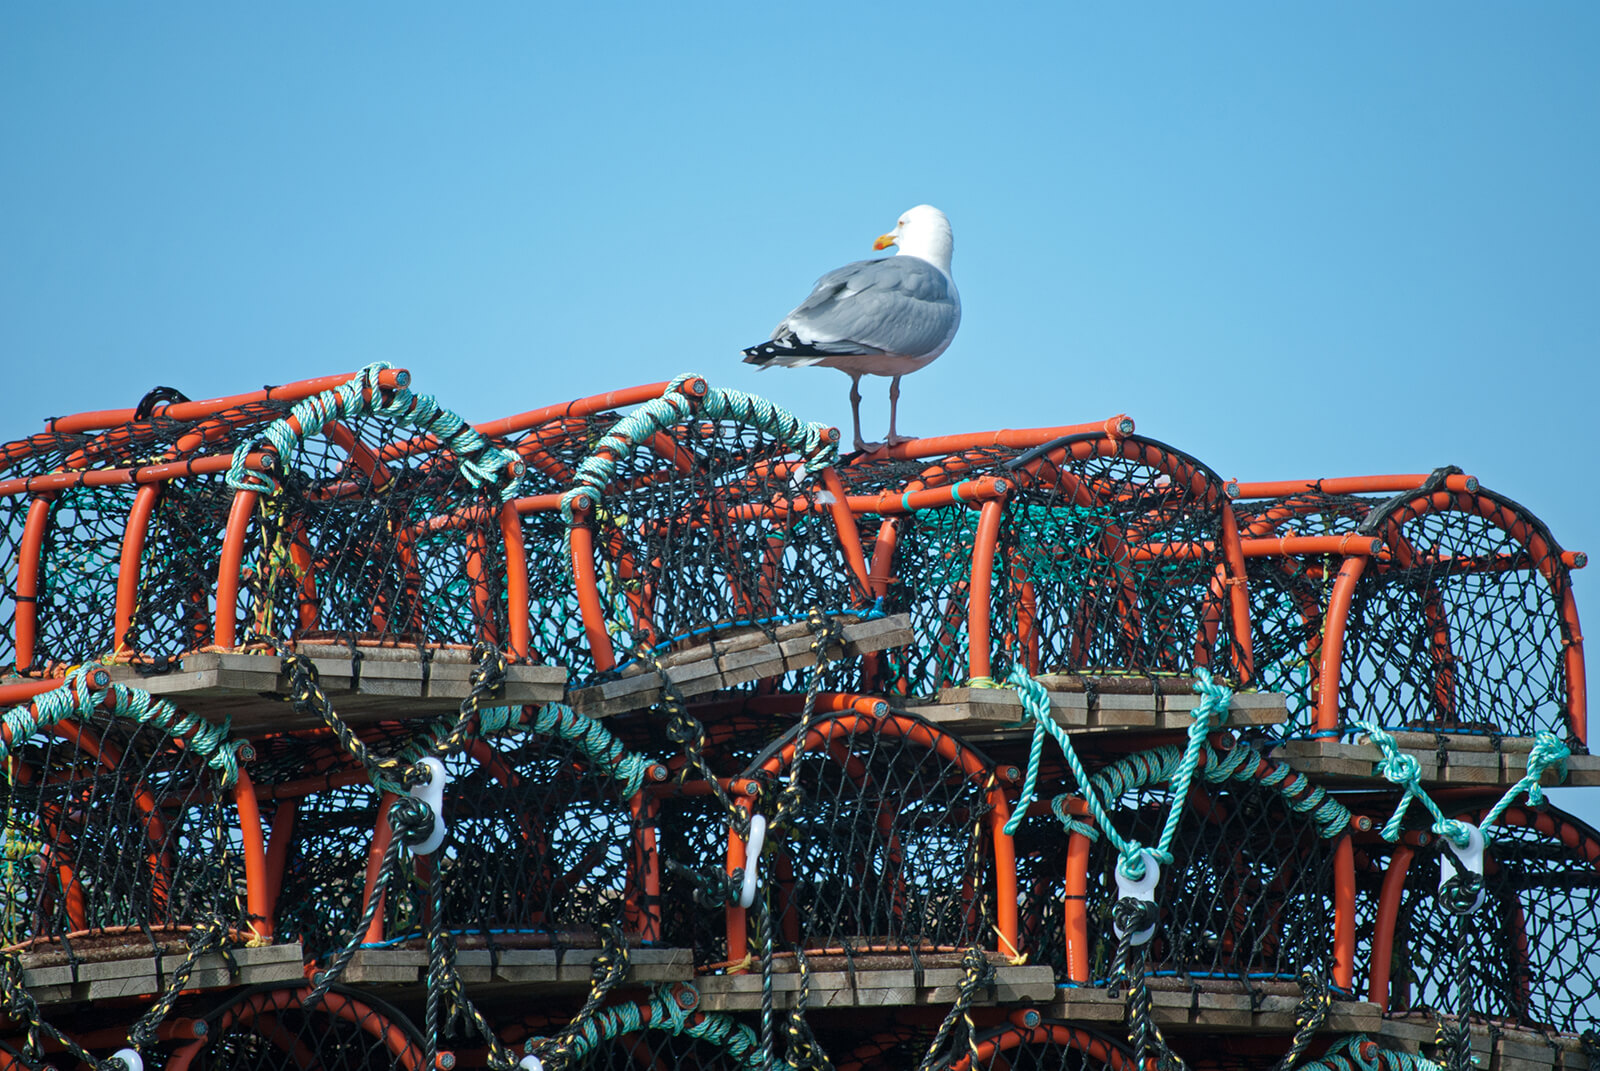 Stack of crab pots with a seagull perched on top